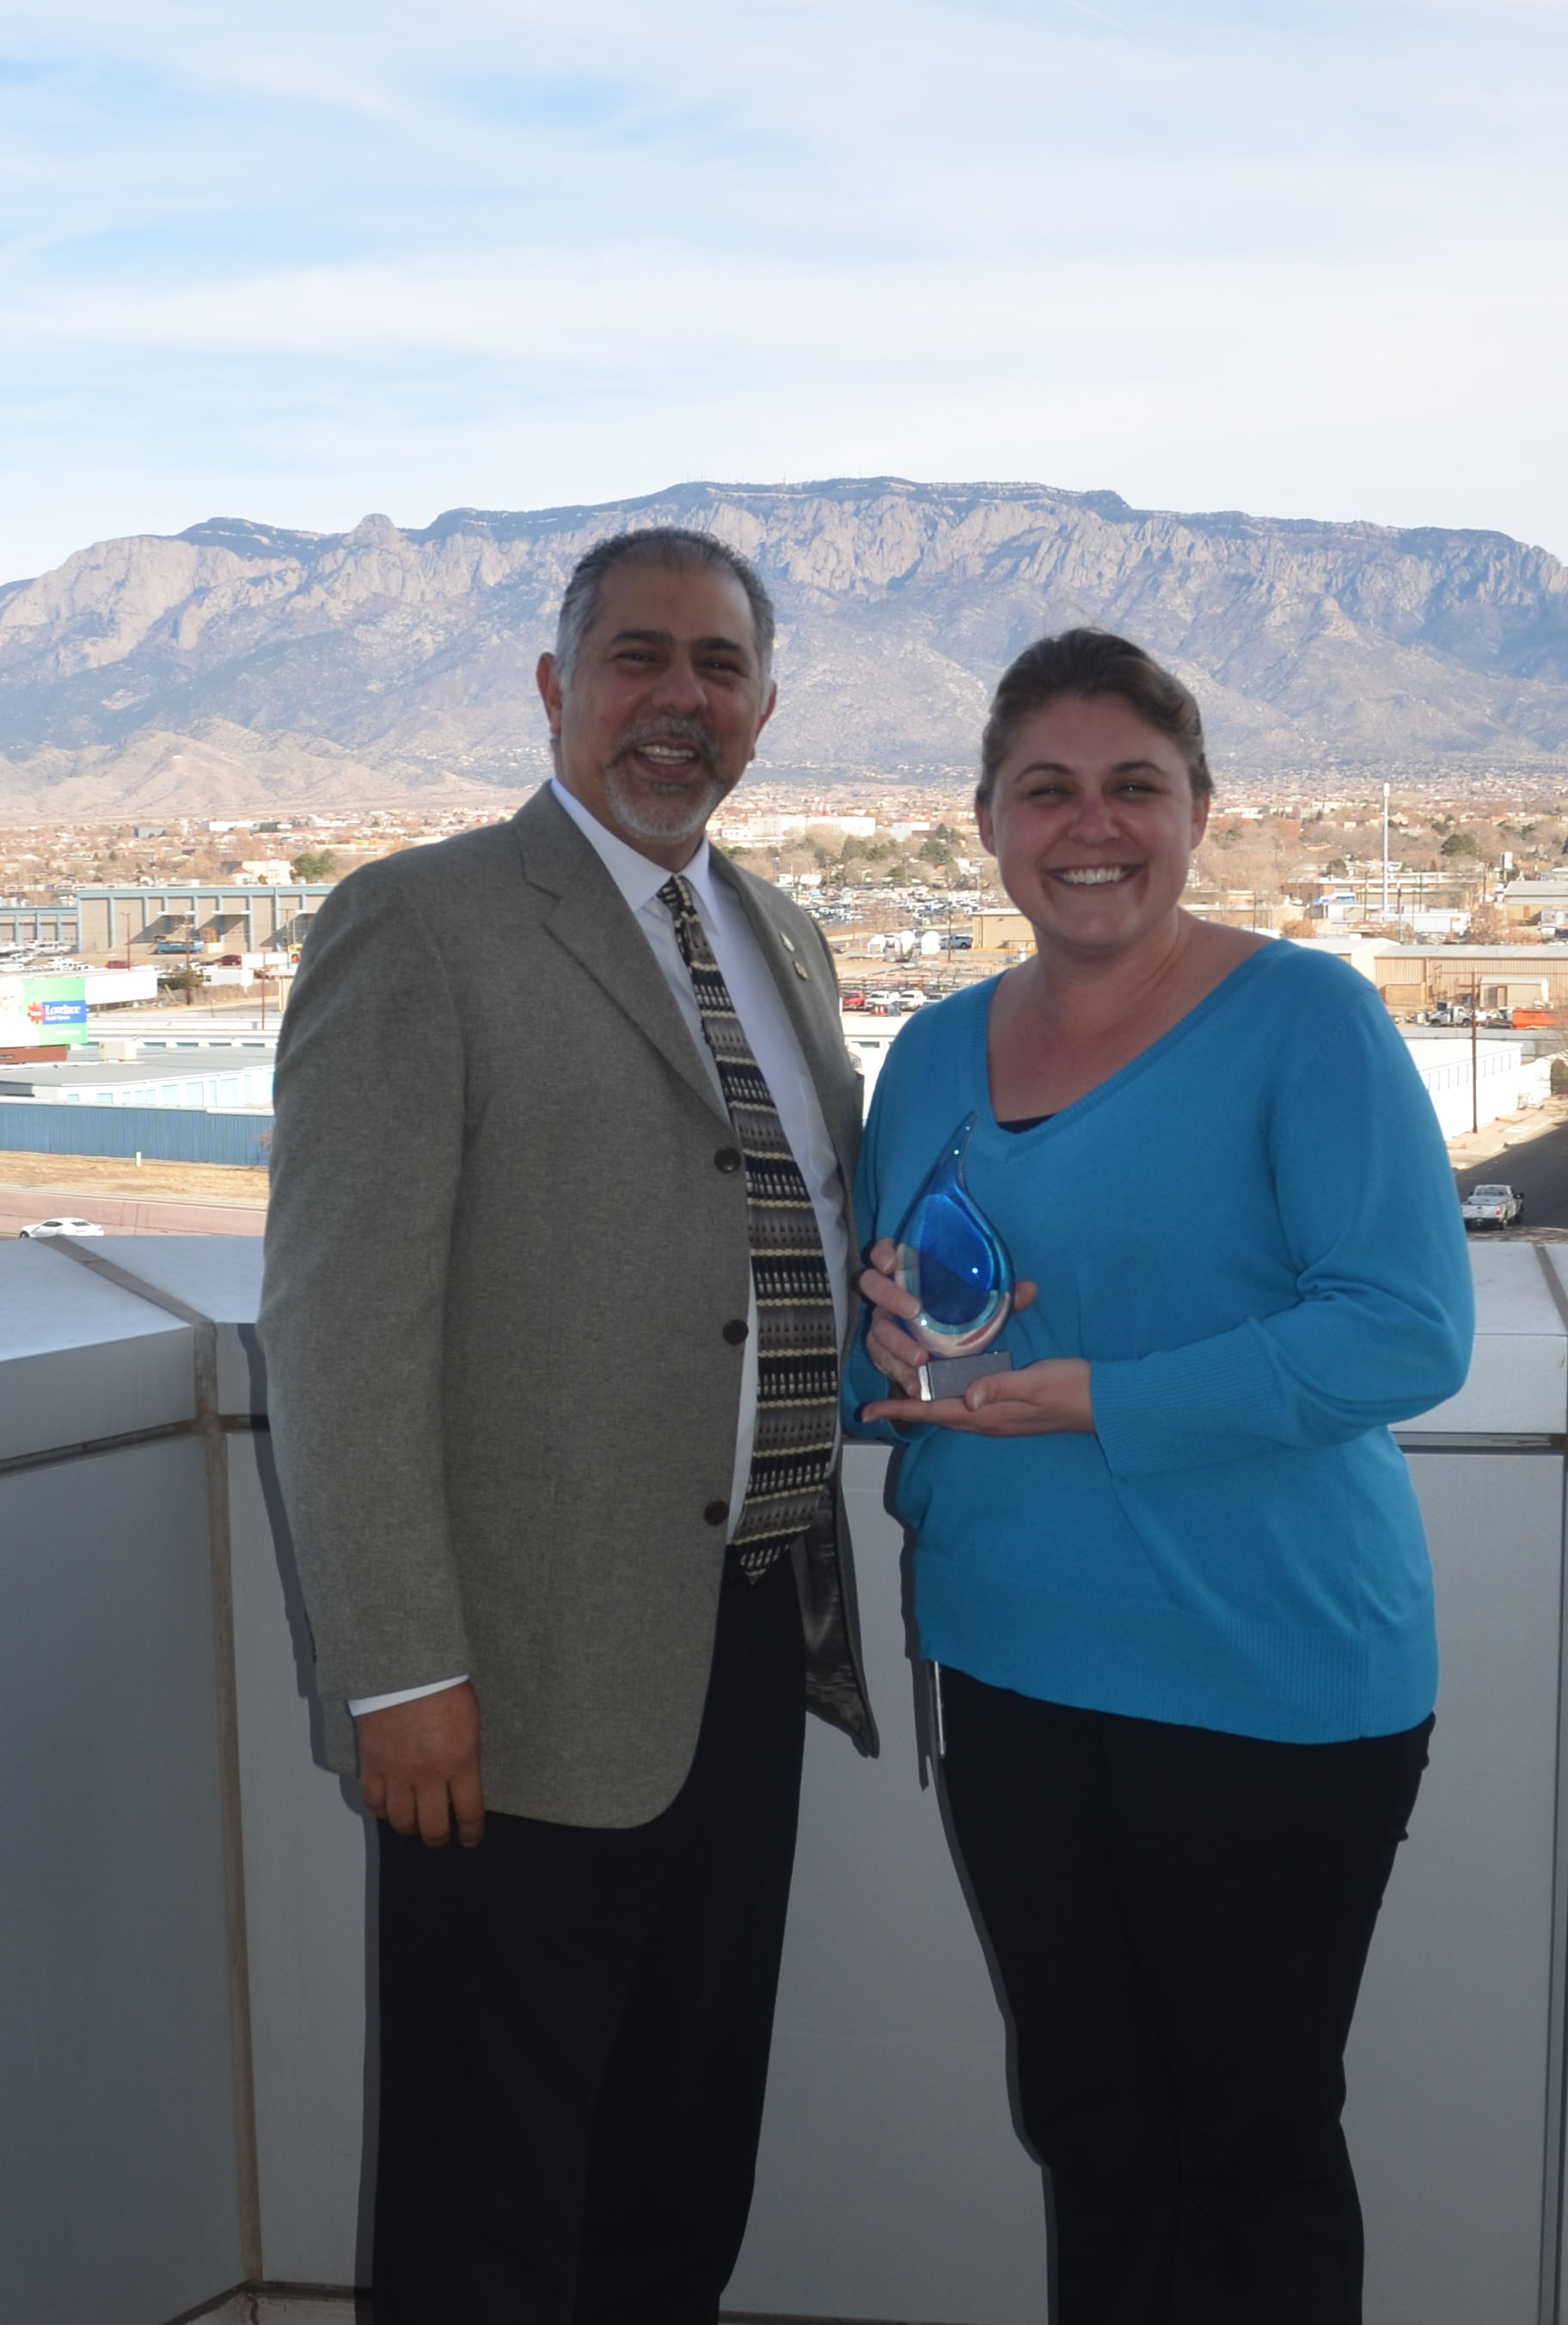 Photo of Molly Murphy, Archeologist and Xavier Montoya, State Conservationist. Receiving the award for 2017 Civil Rights Employee of the Year.